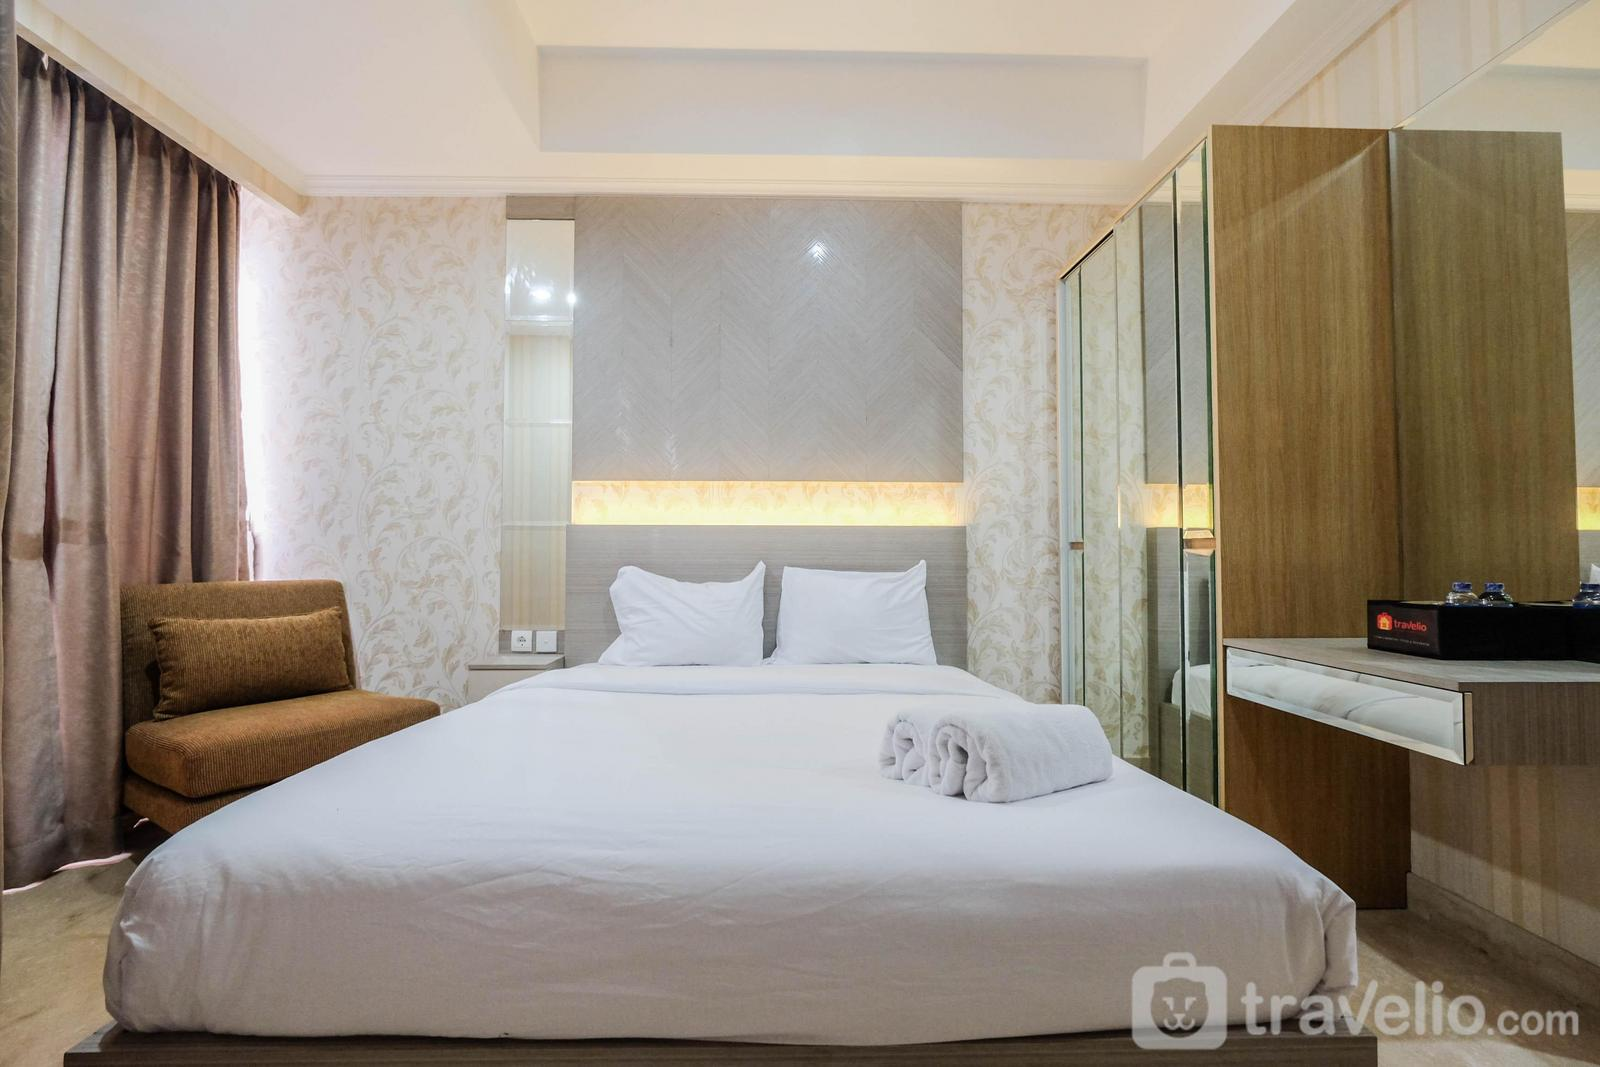 Menteng Park Apartment - Cozy Studio Room Apartment Menteng Park By Travelio